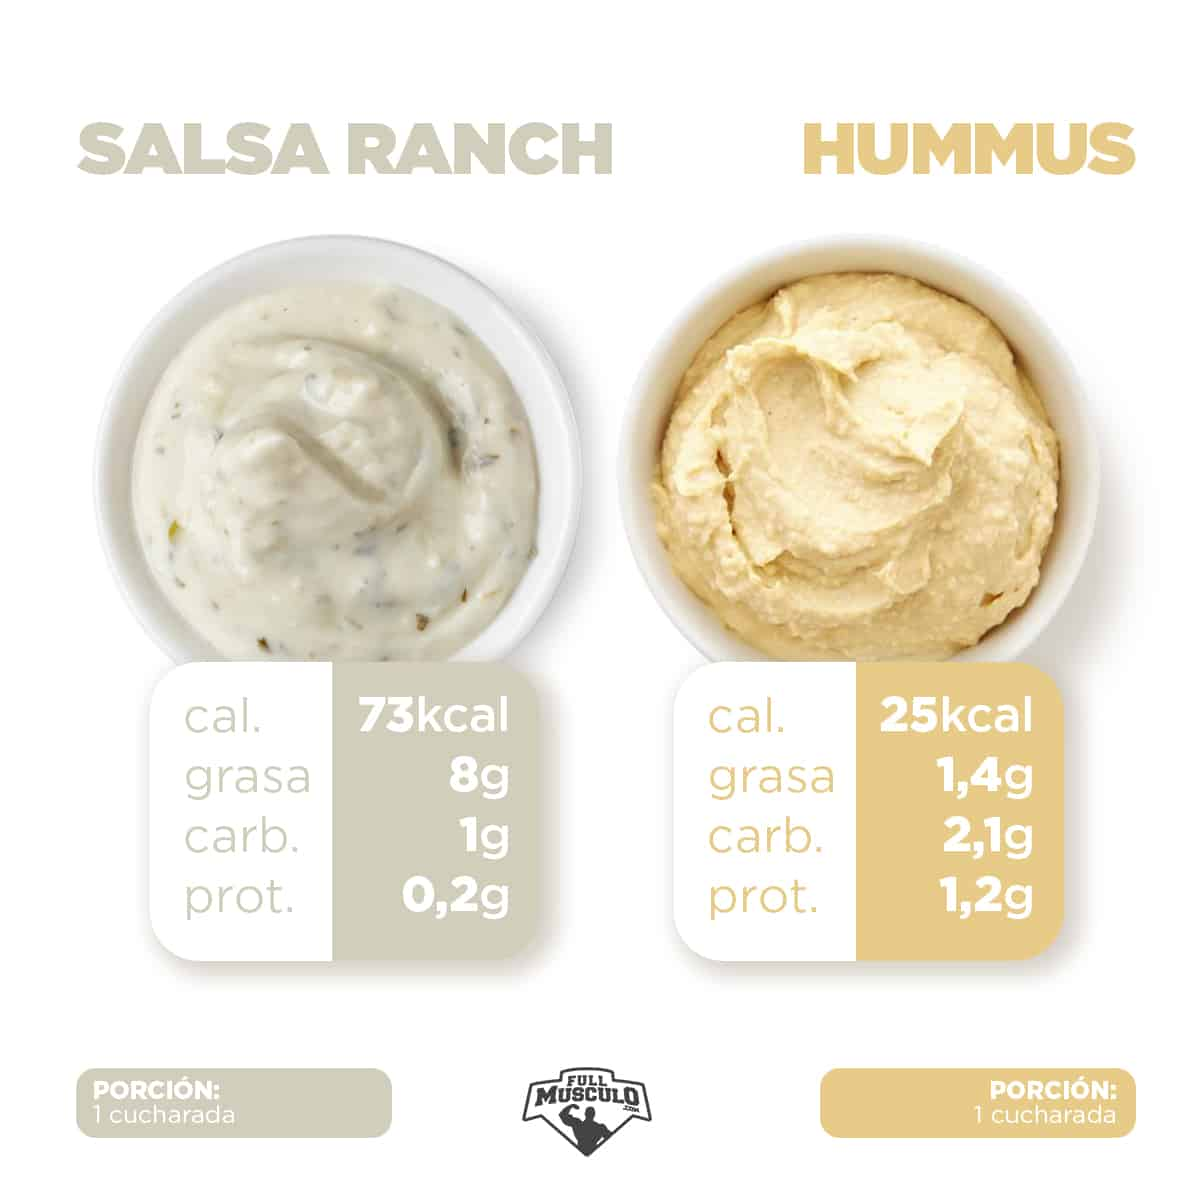 hummus vs ranch